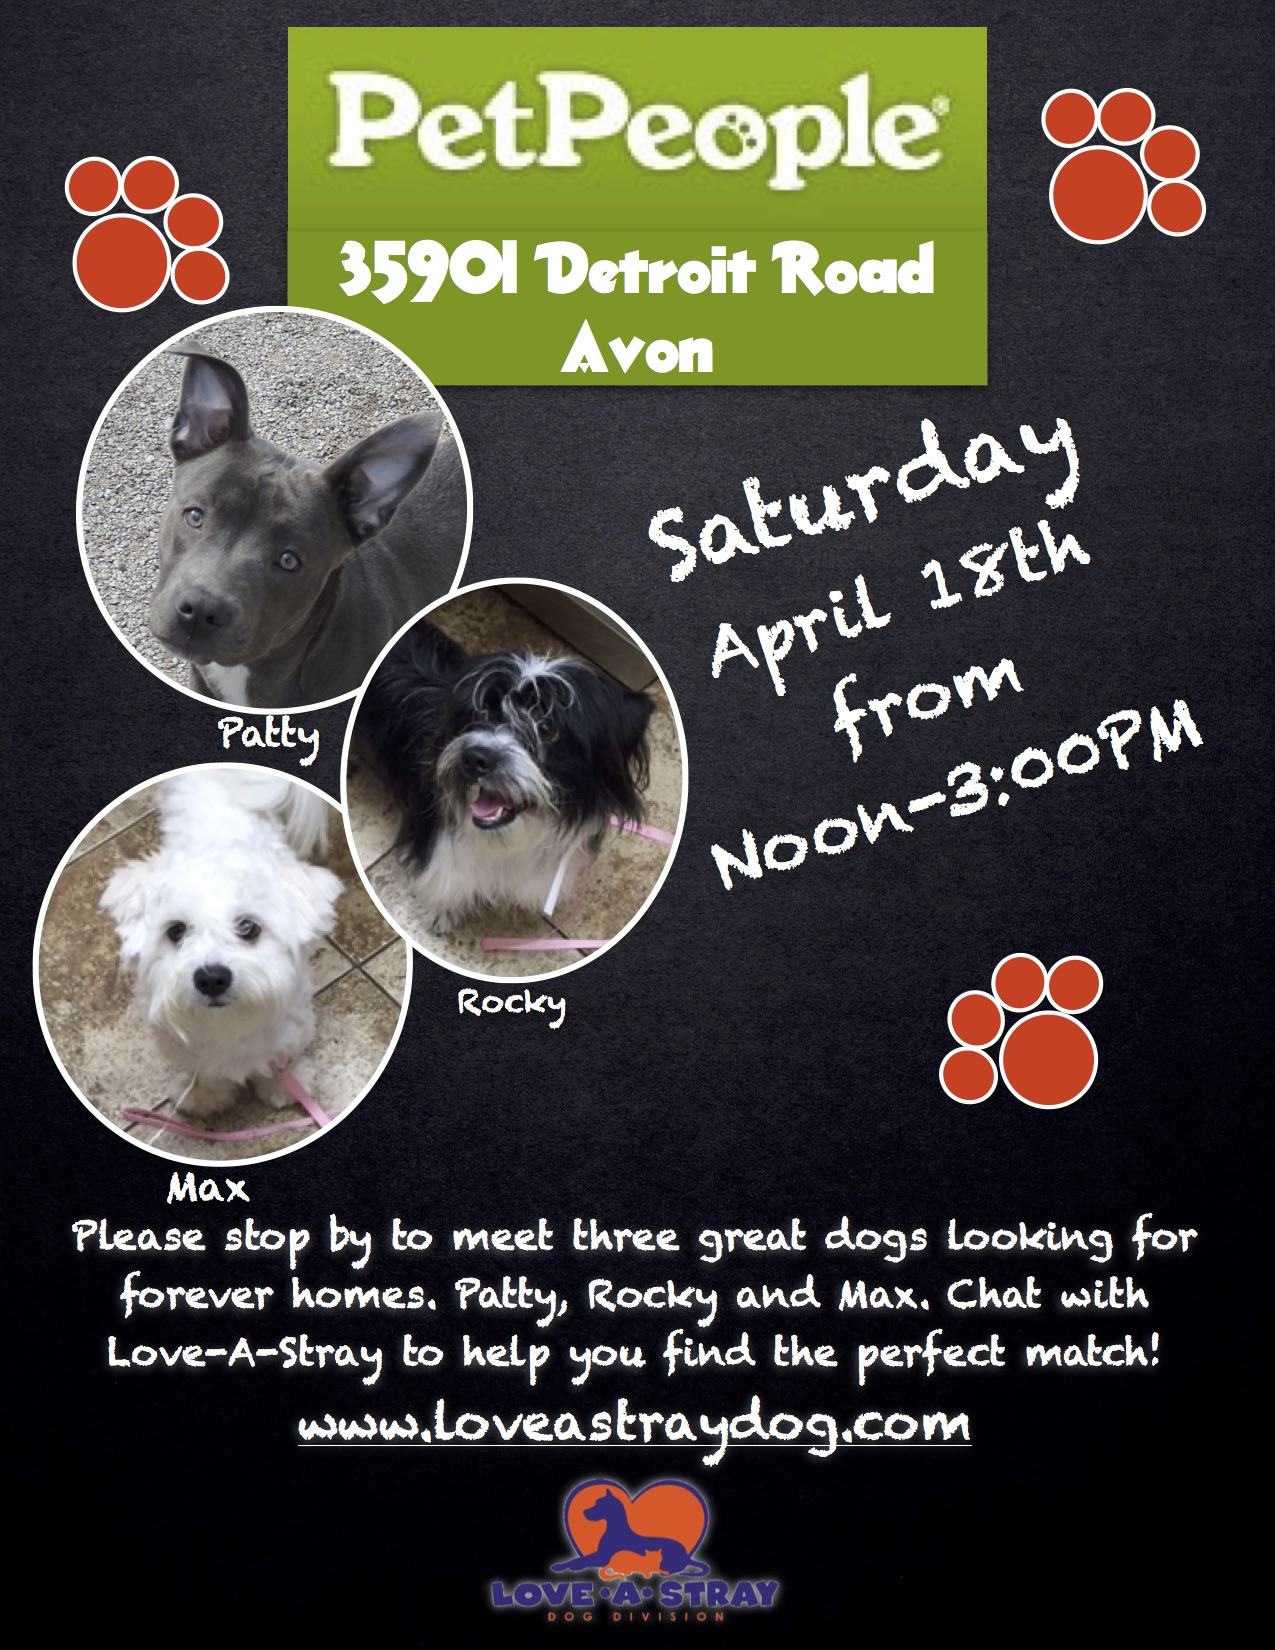 PetPeople Adoption Event